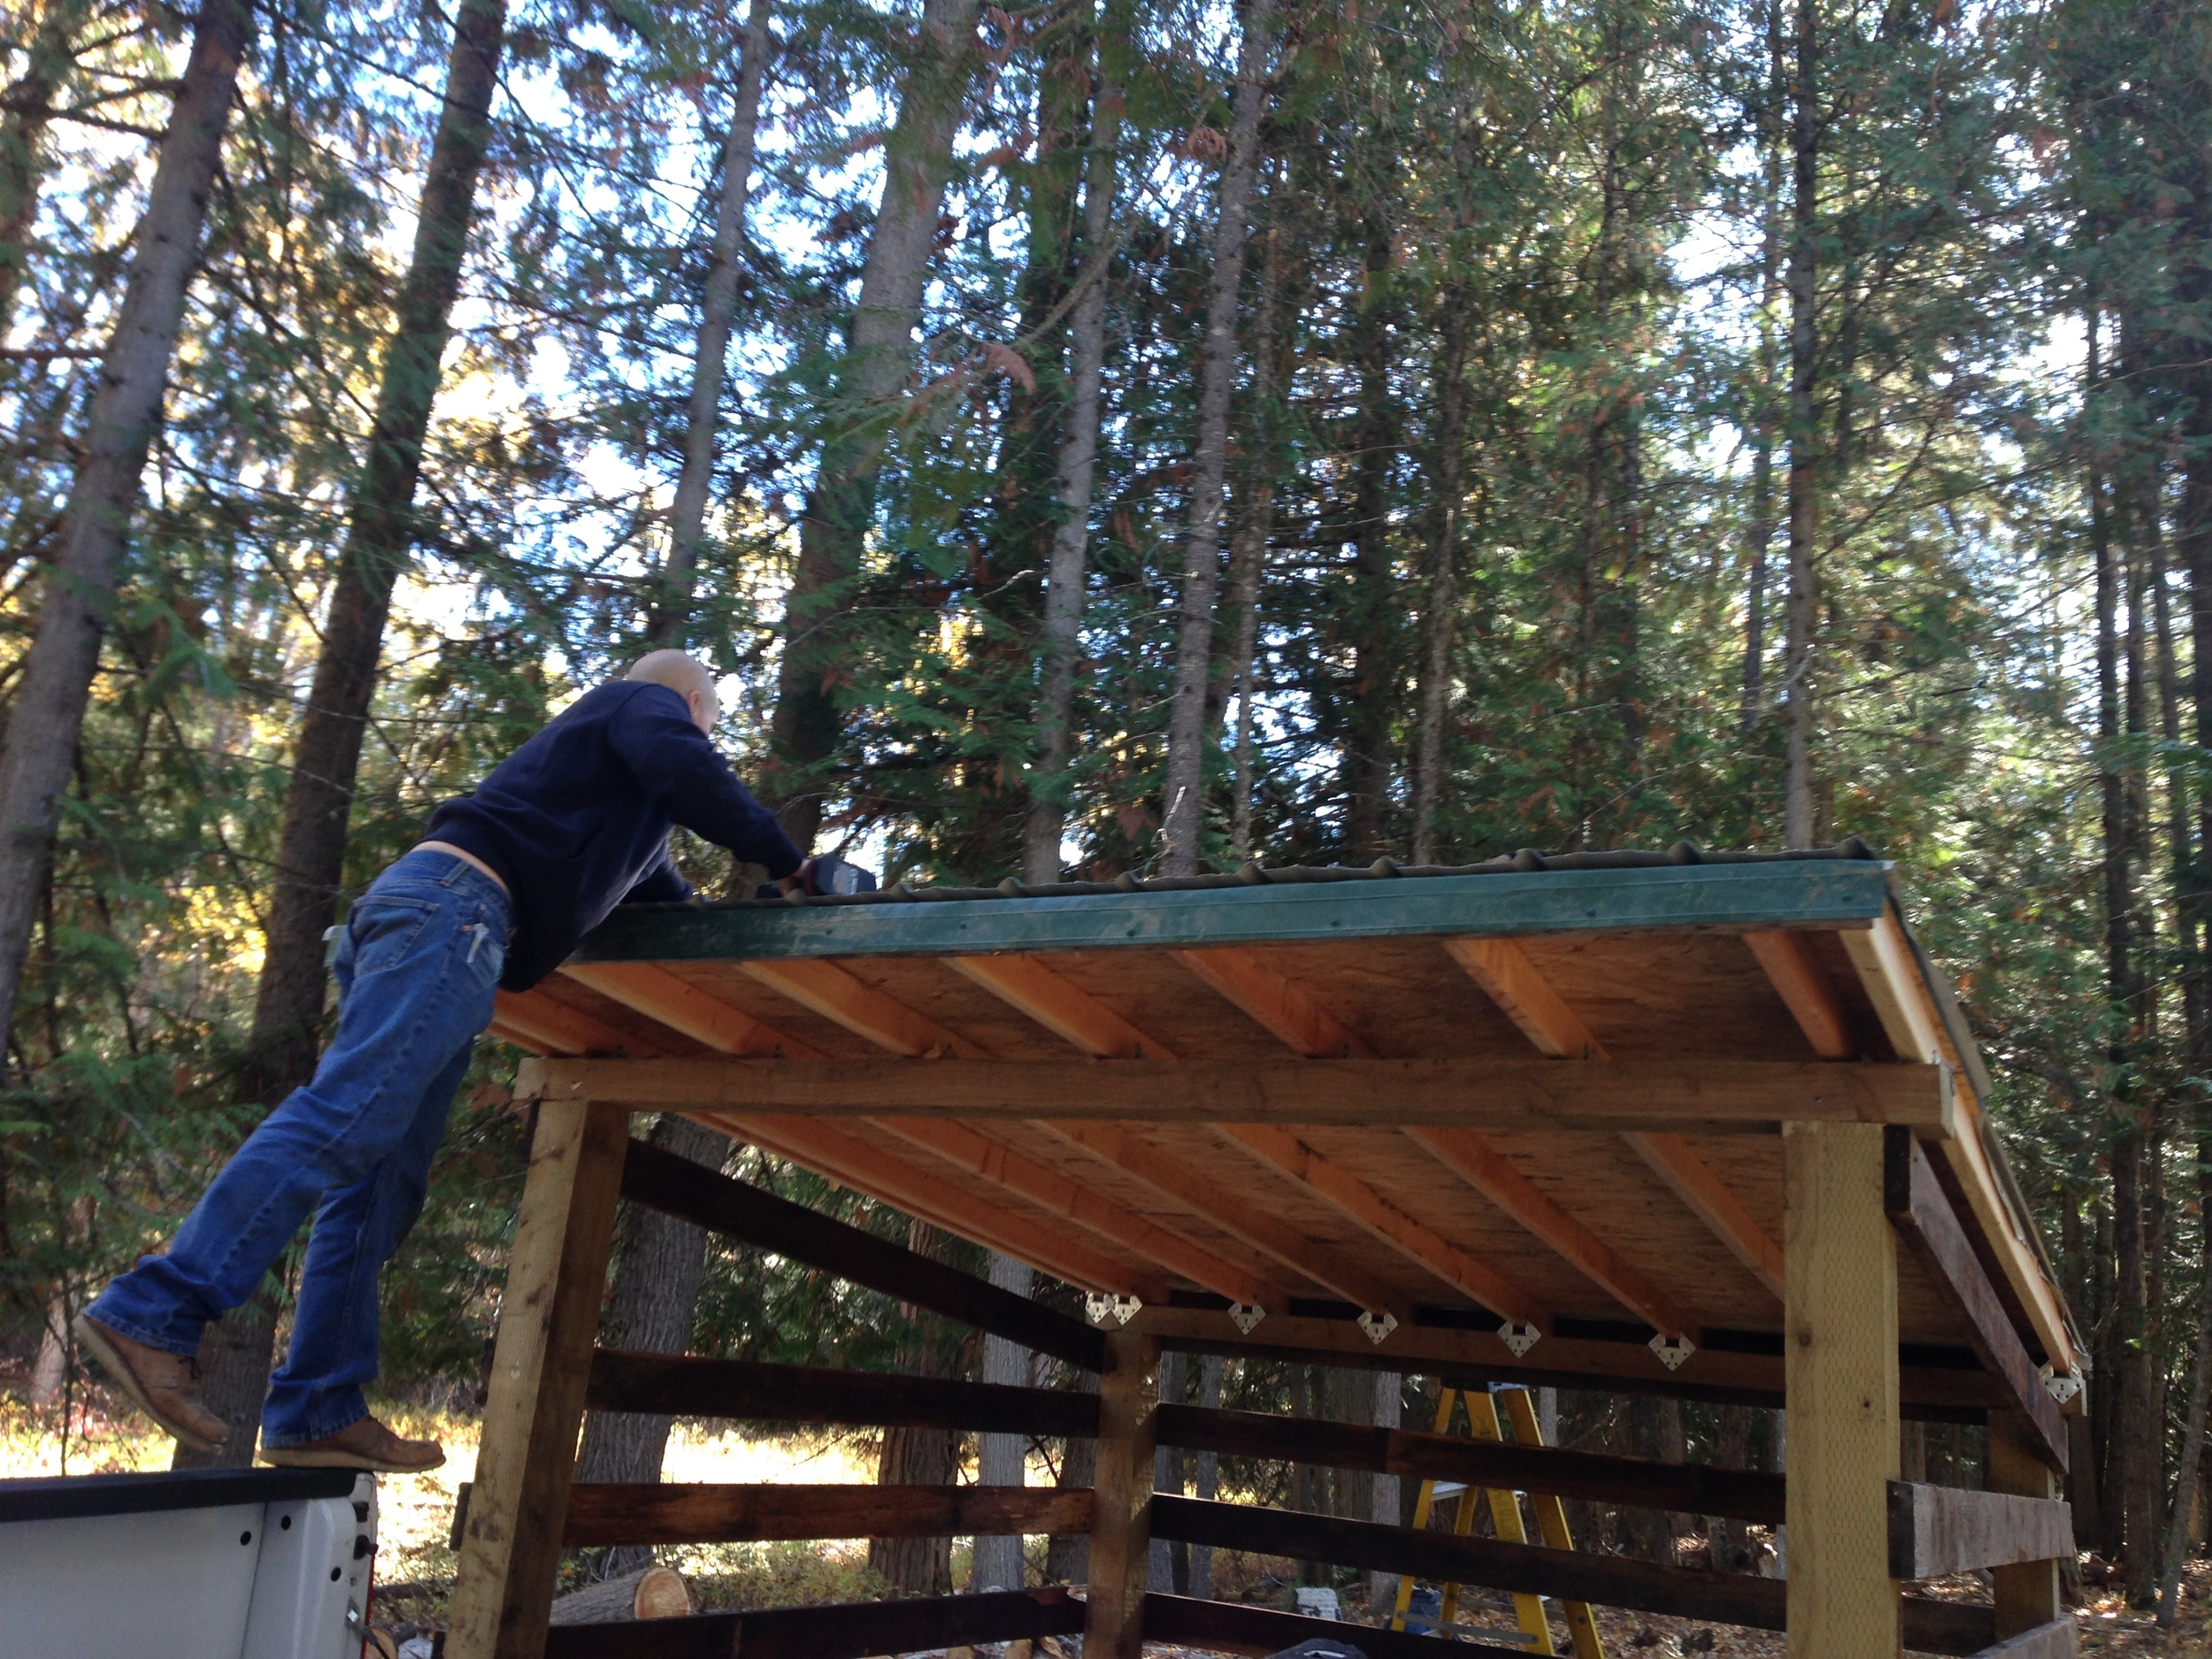 Working on the roof of the woodshed.